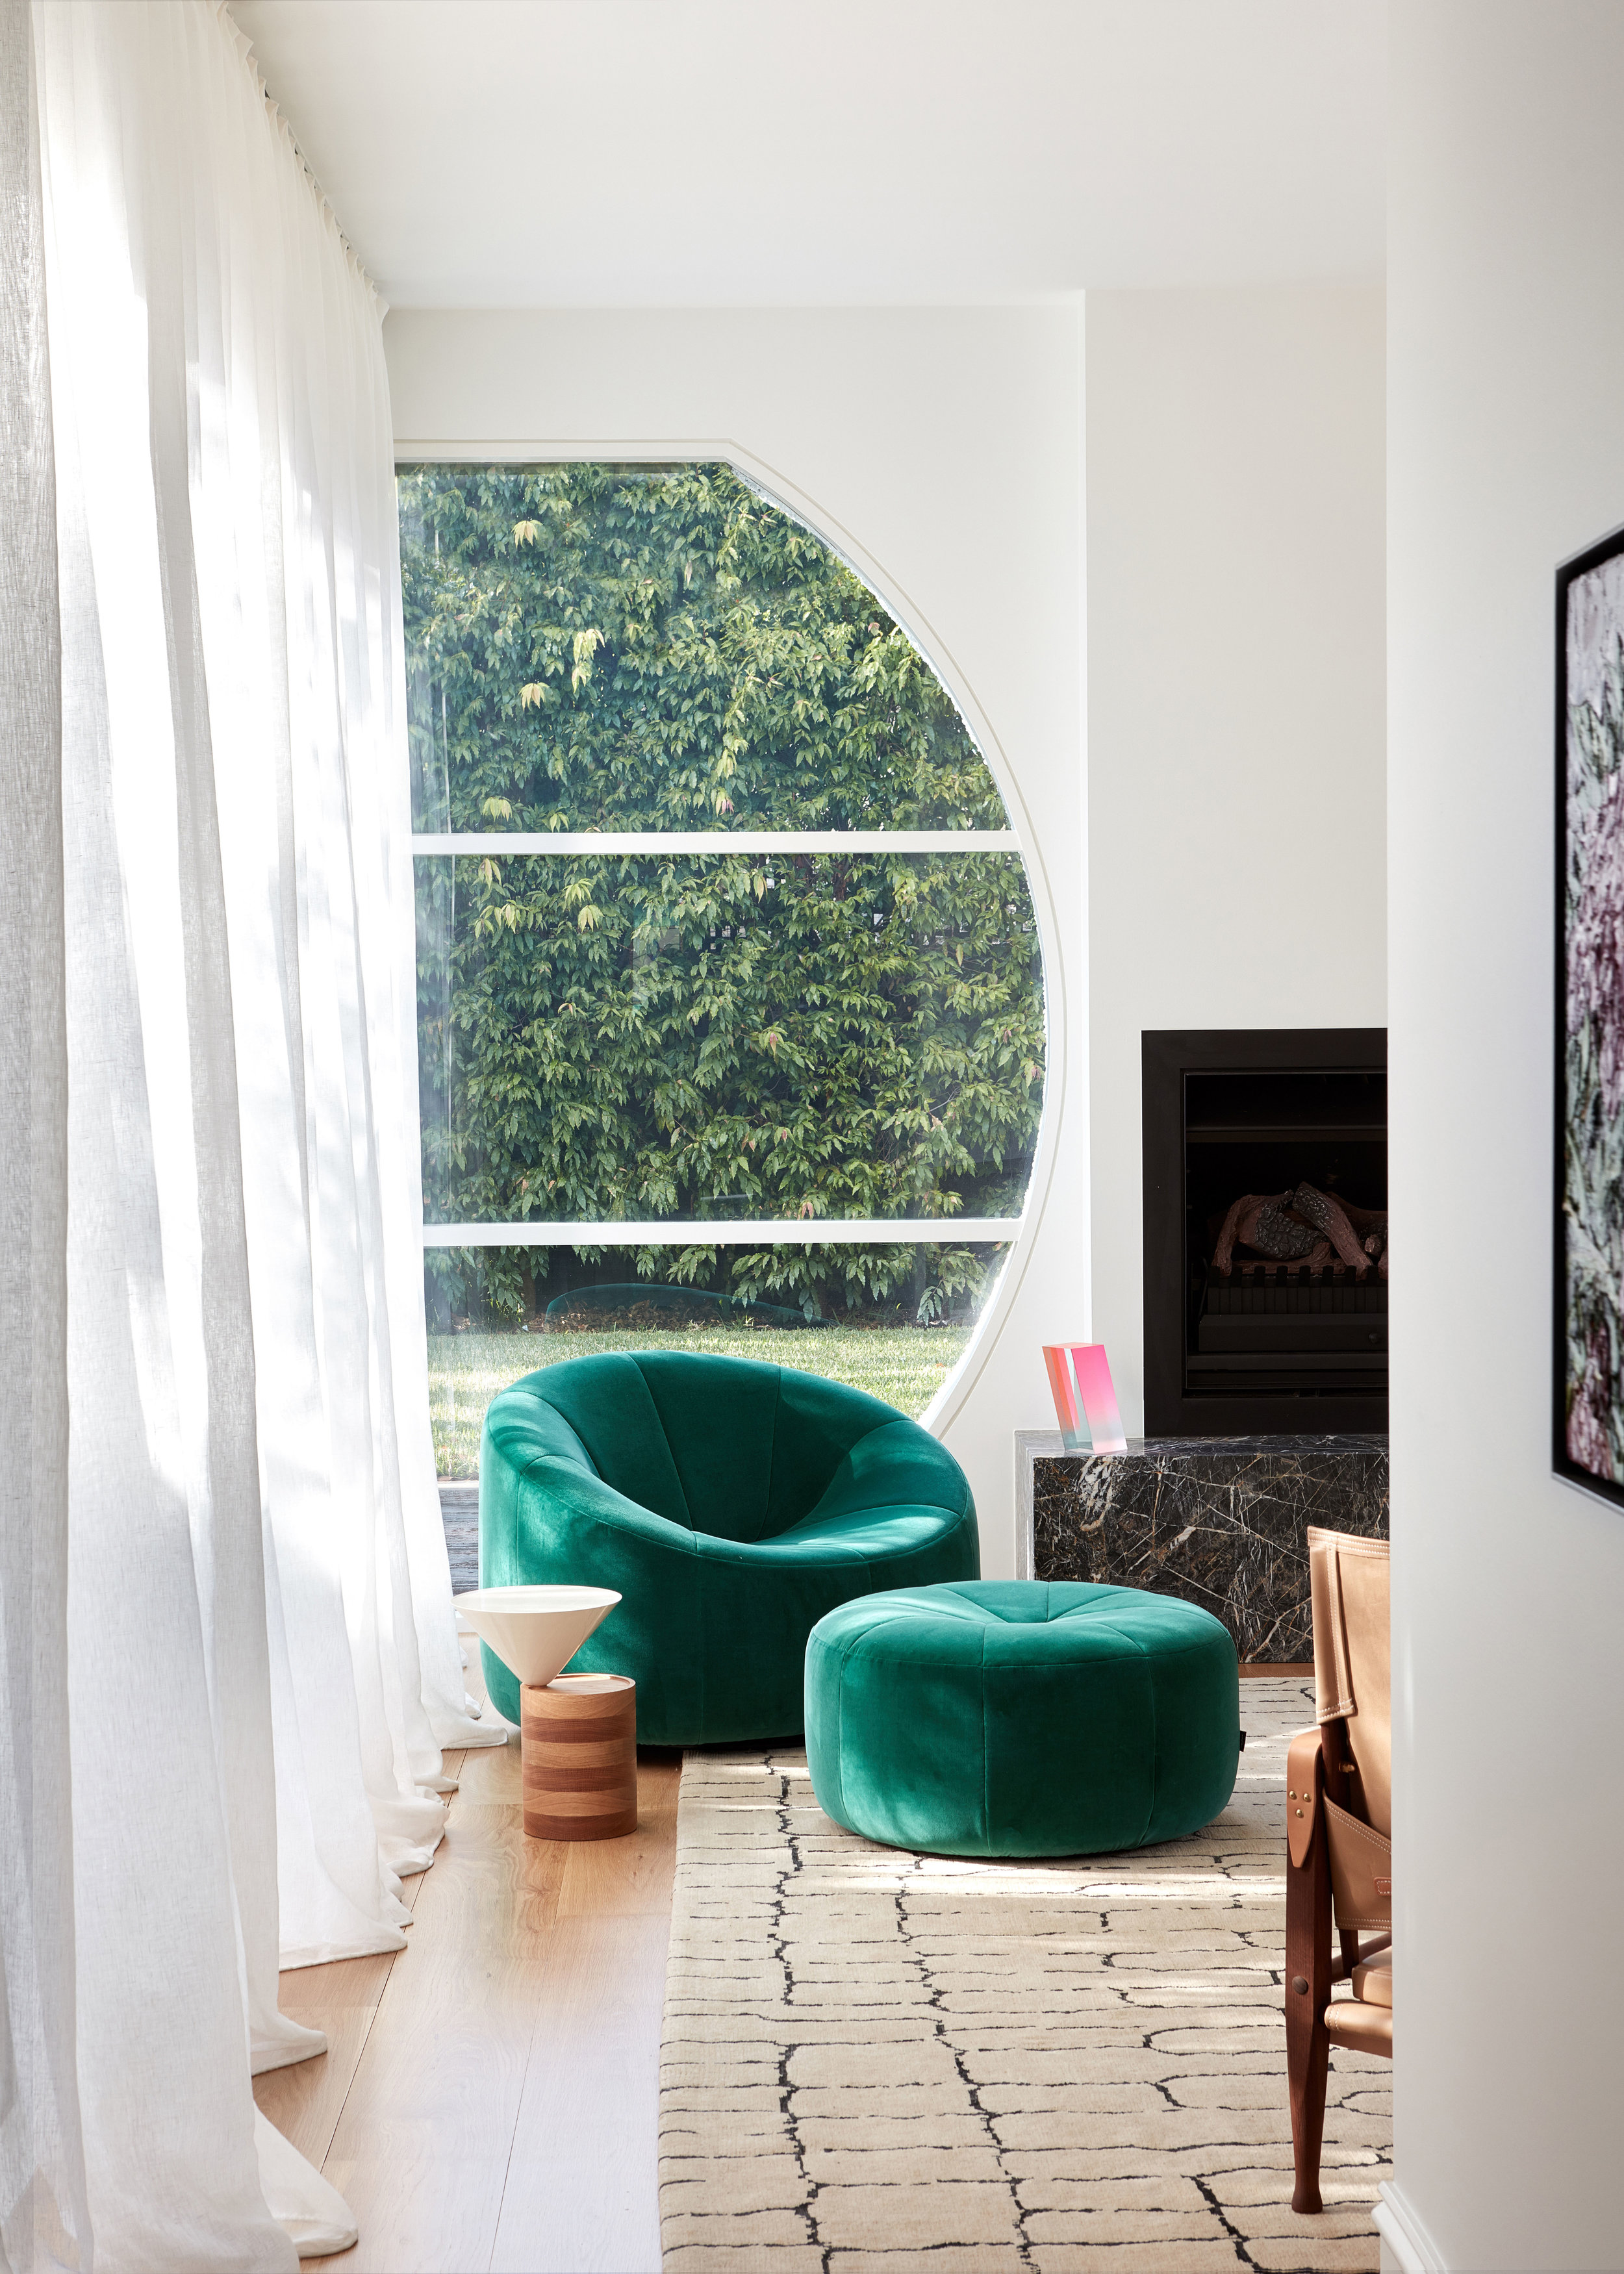 Dulux Colour Award 2019 - Elsternwick House by  Chelsea Hing . Photo - Sean Fennessy.